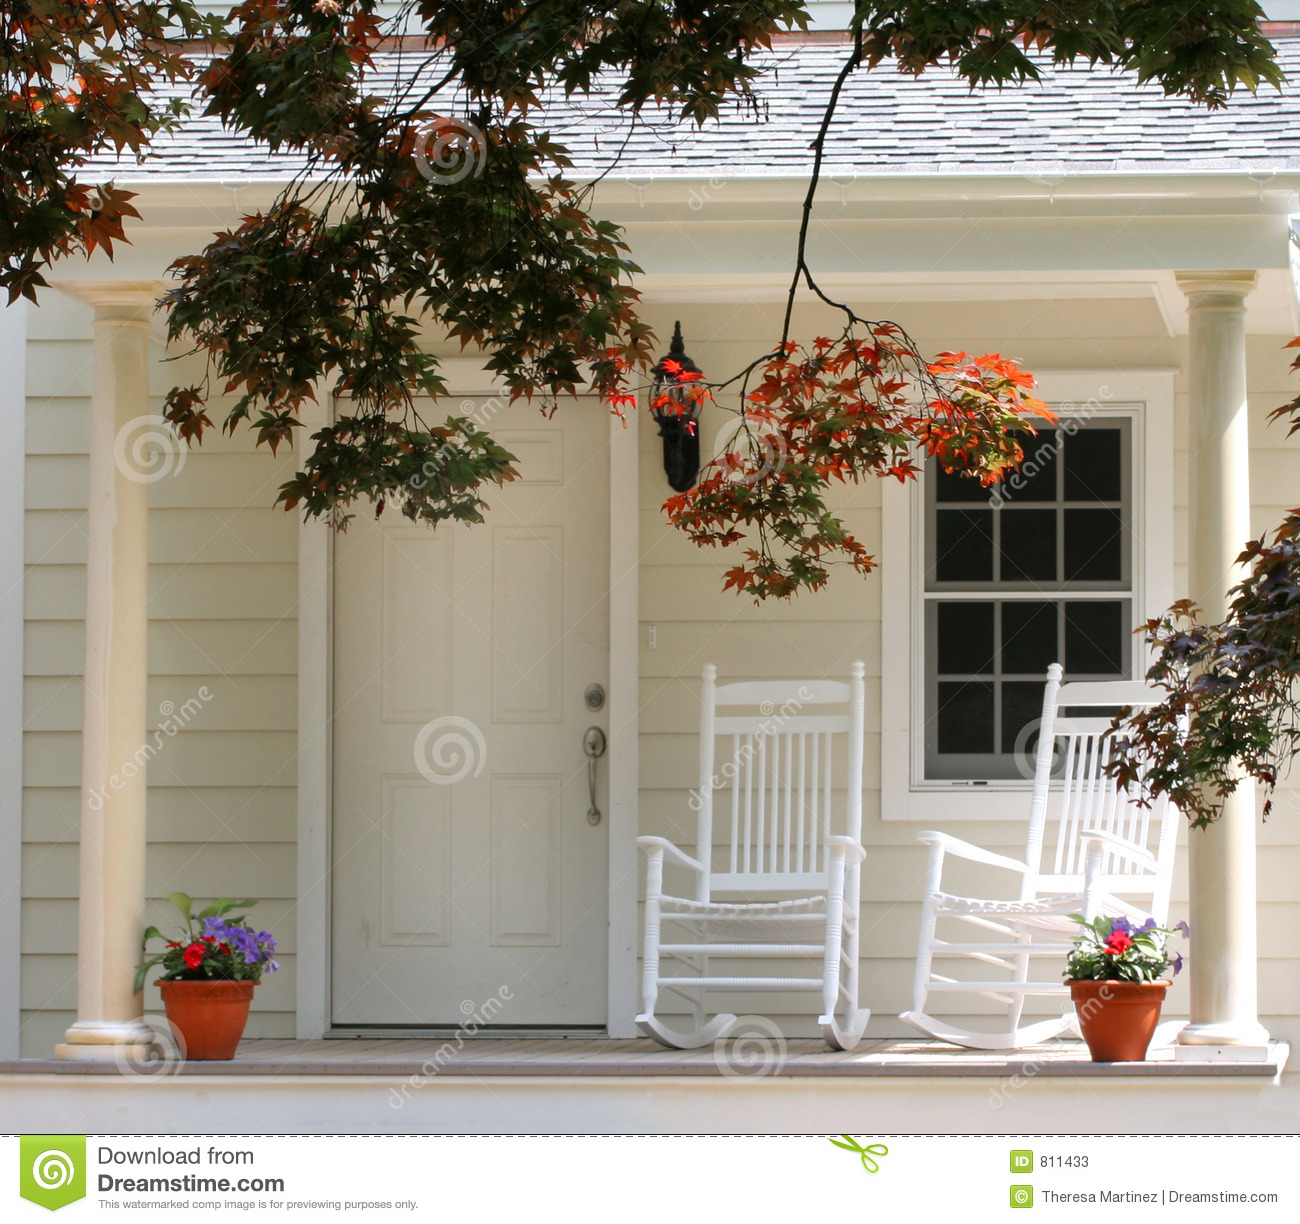 Front Porch Clipart front porch of traditional home royalty free stock images - image